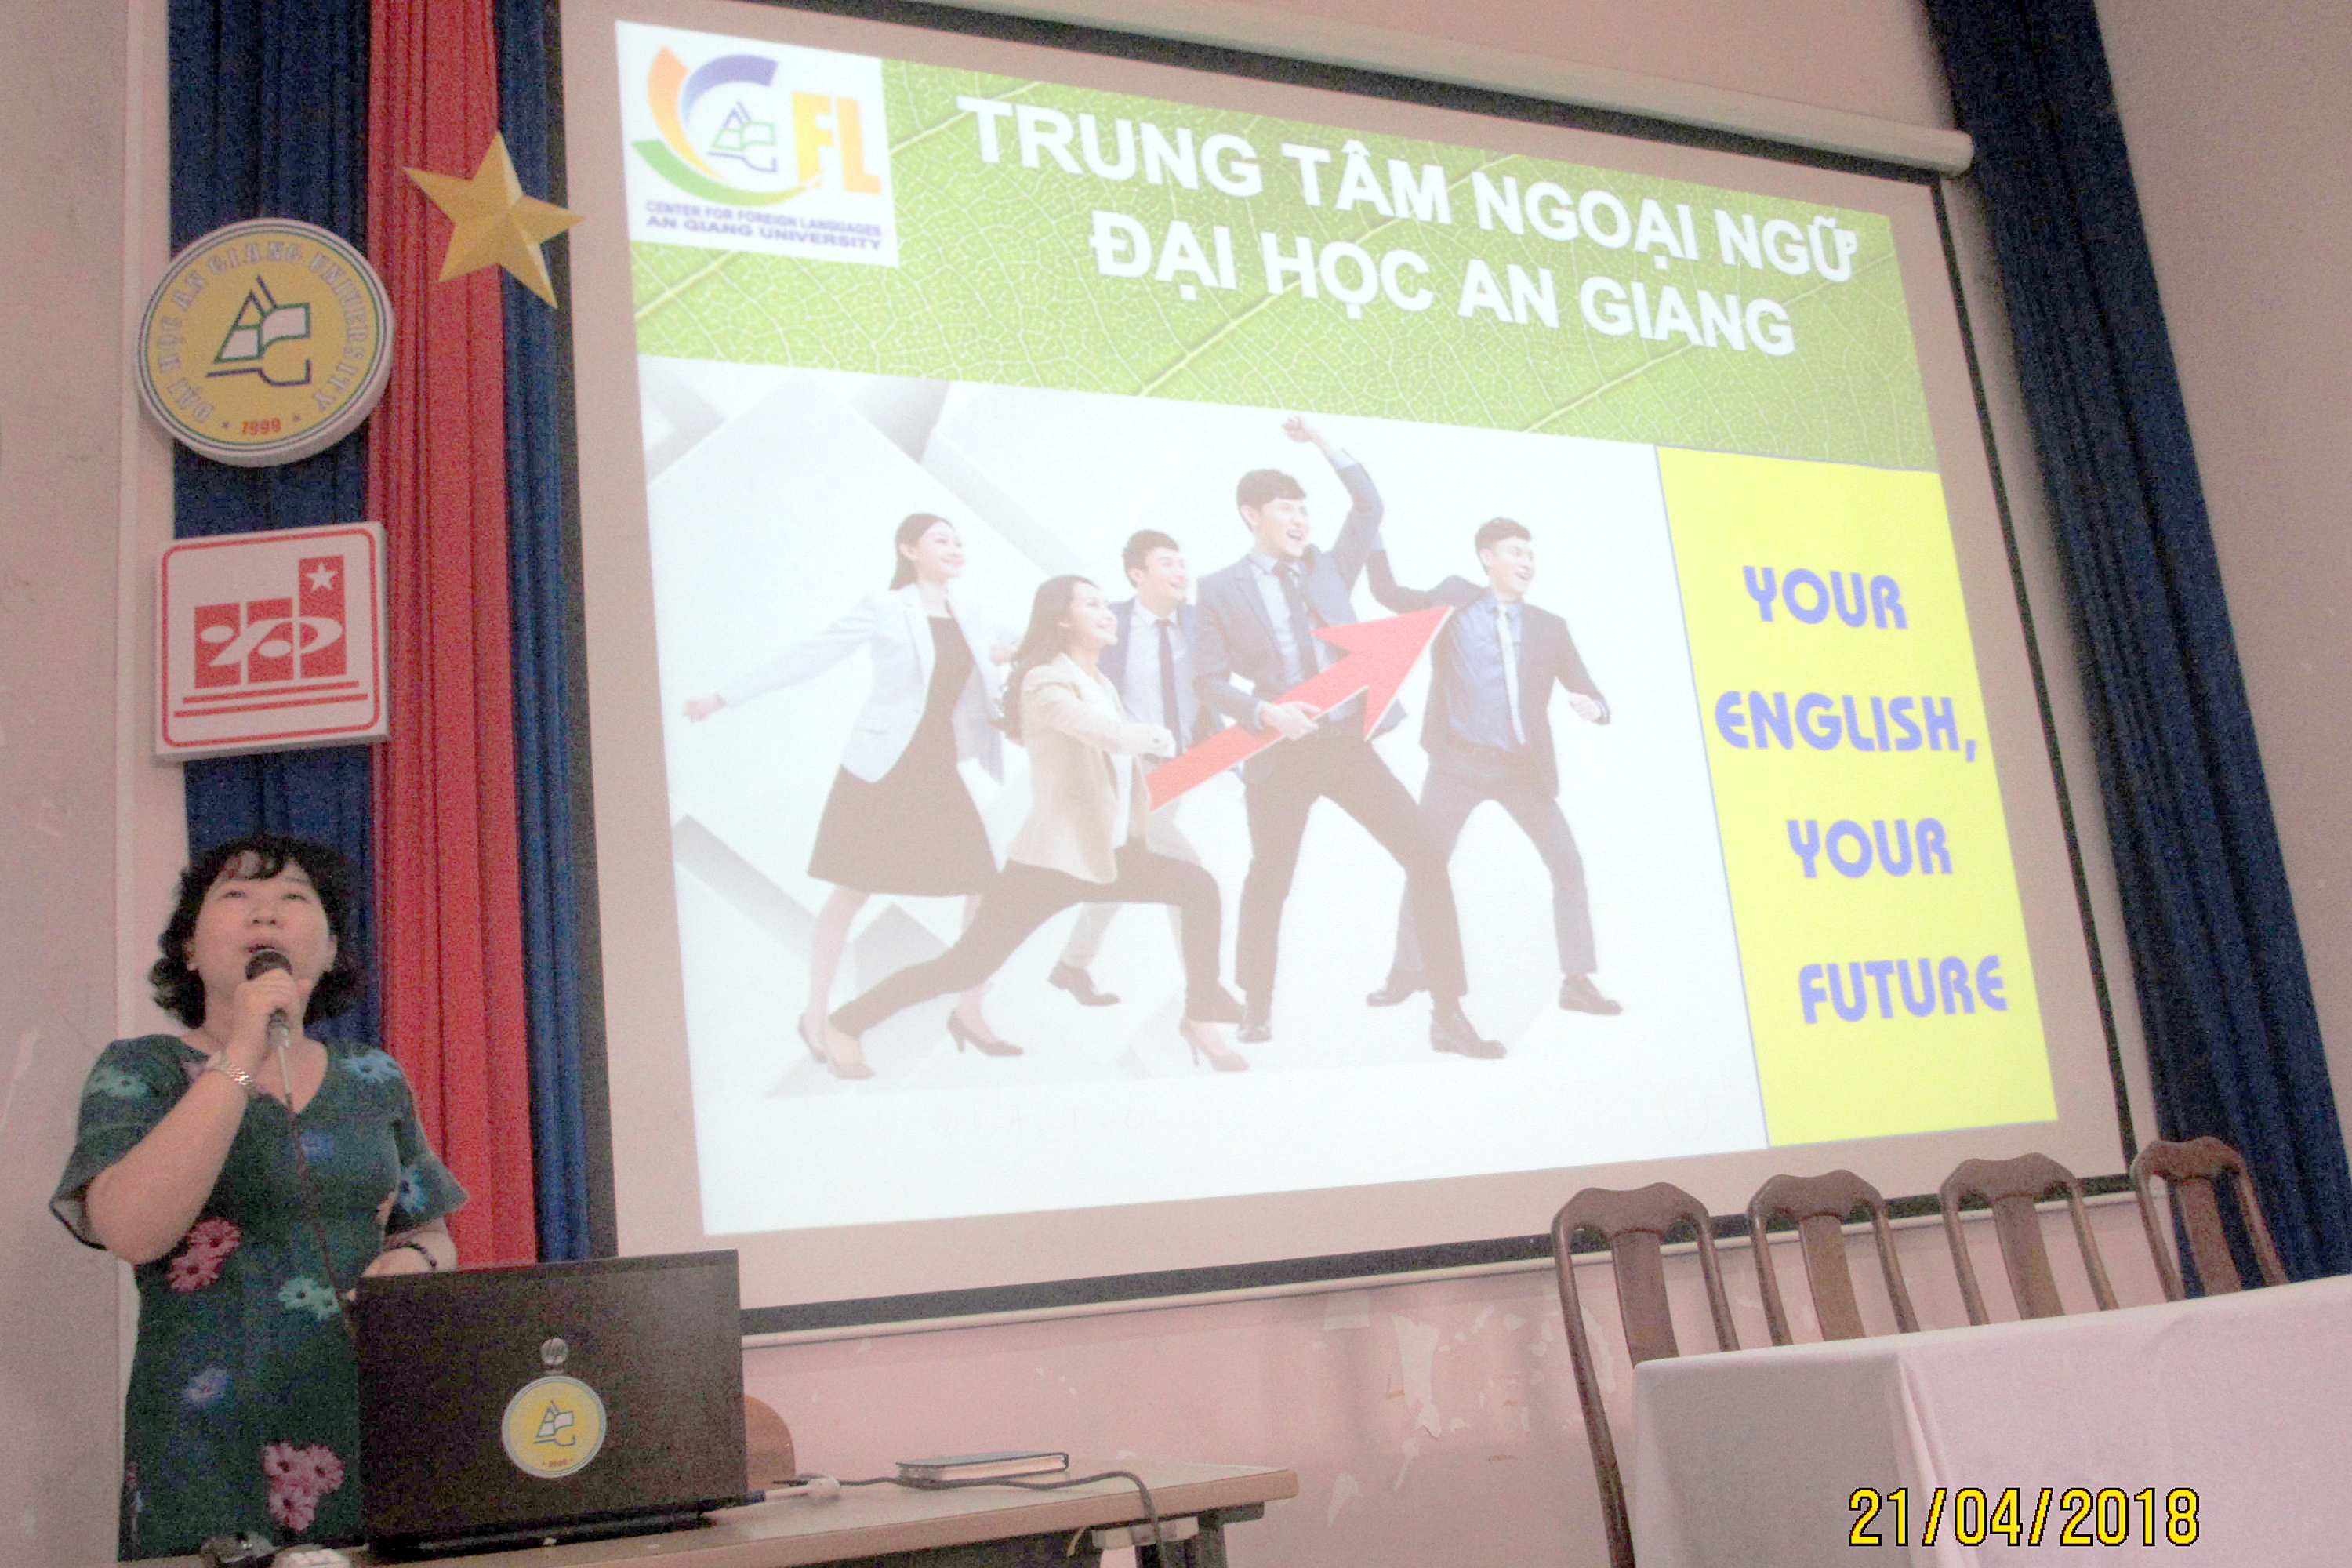 Ms. Nguyen Thi Huyen Trinh – Lecturer of the Center introduced the programs and policies at the Center